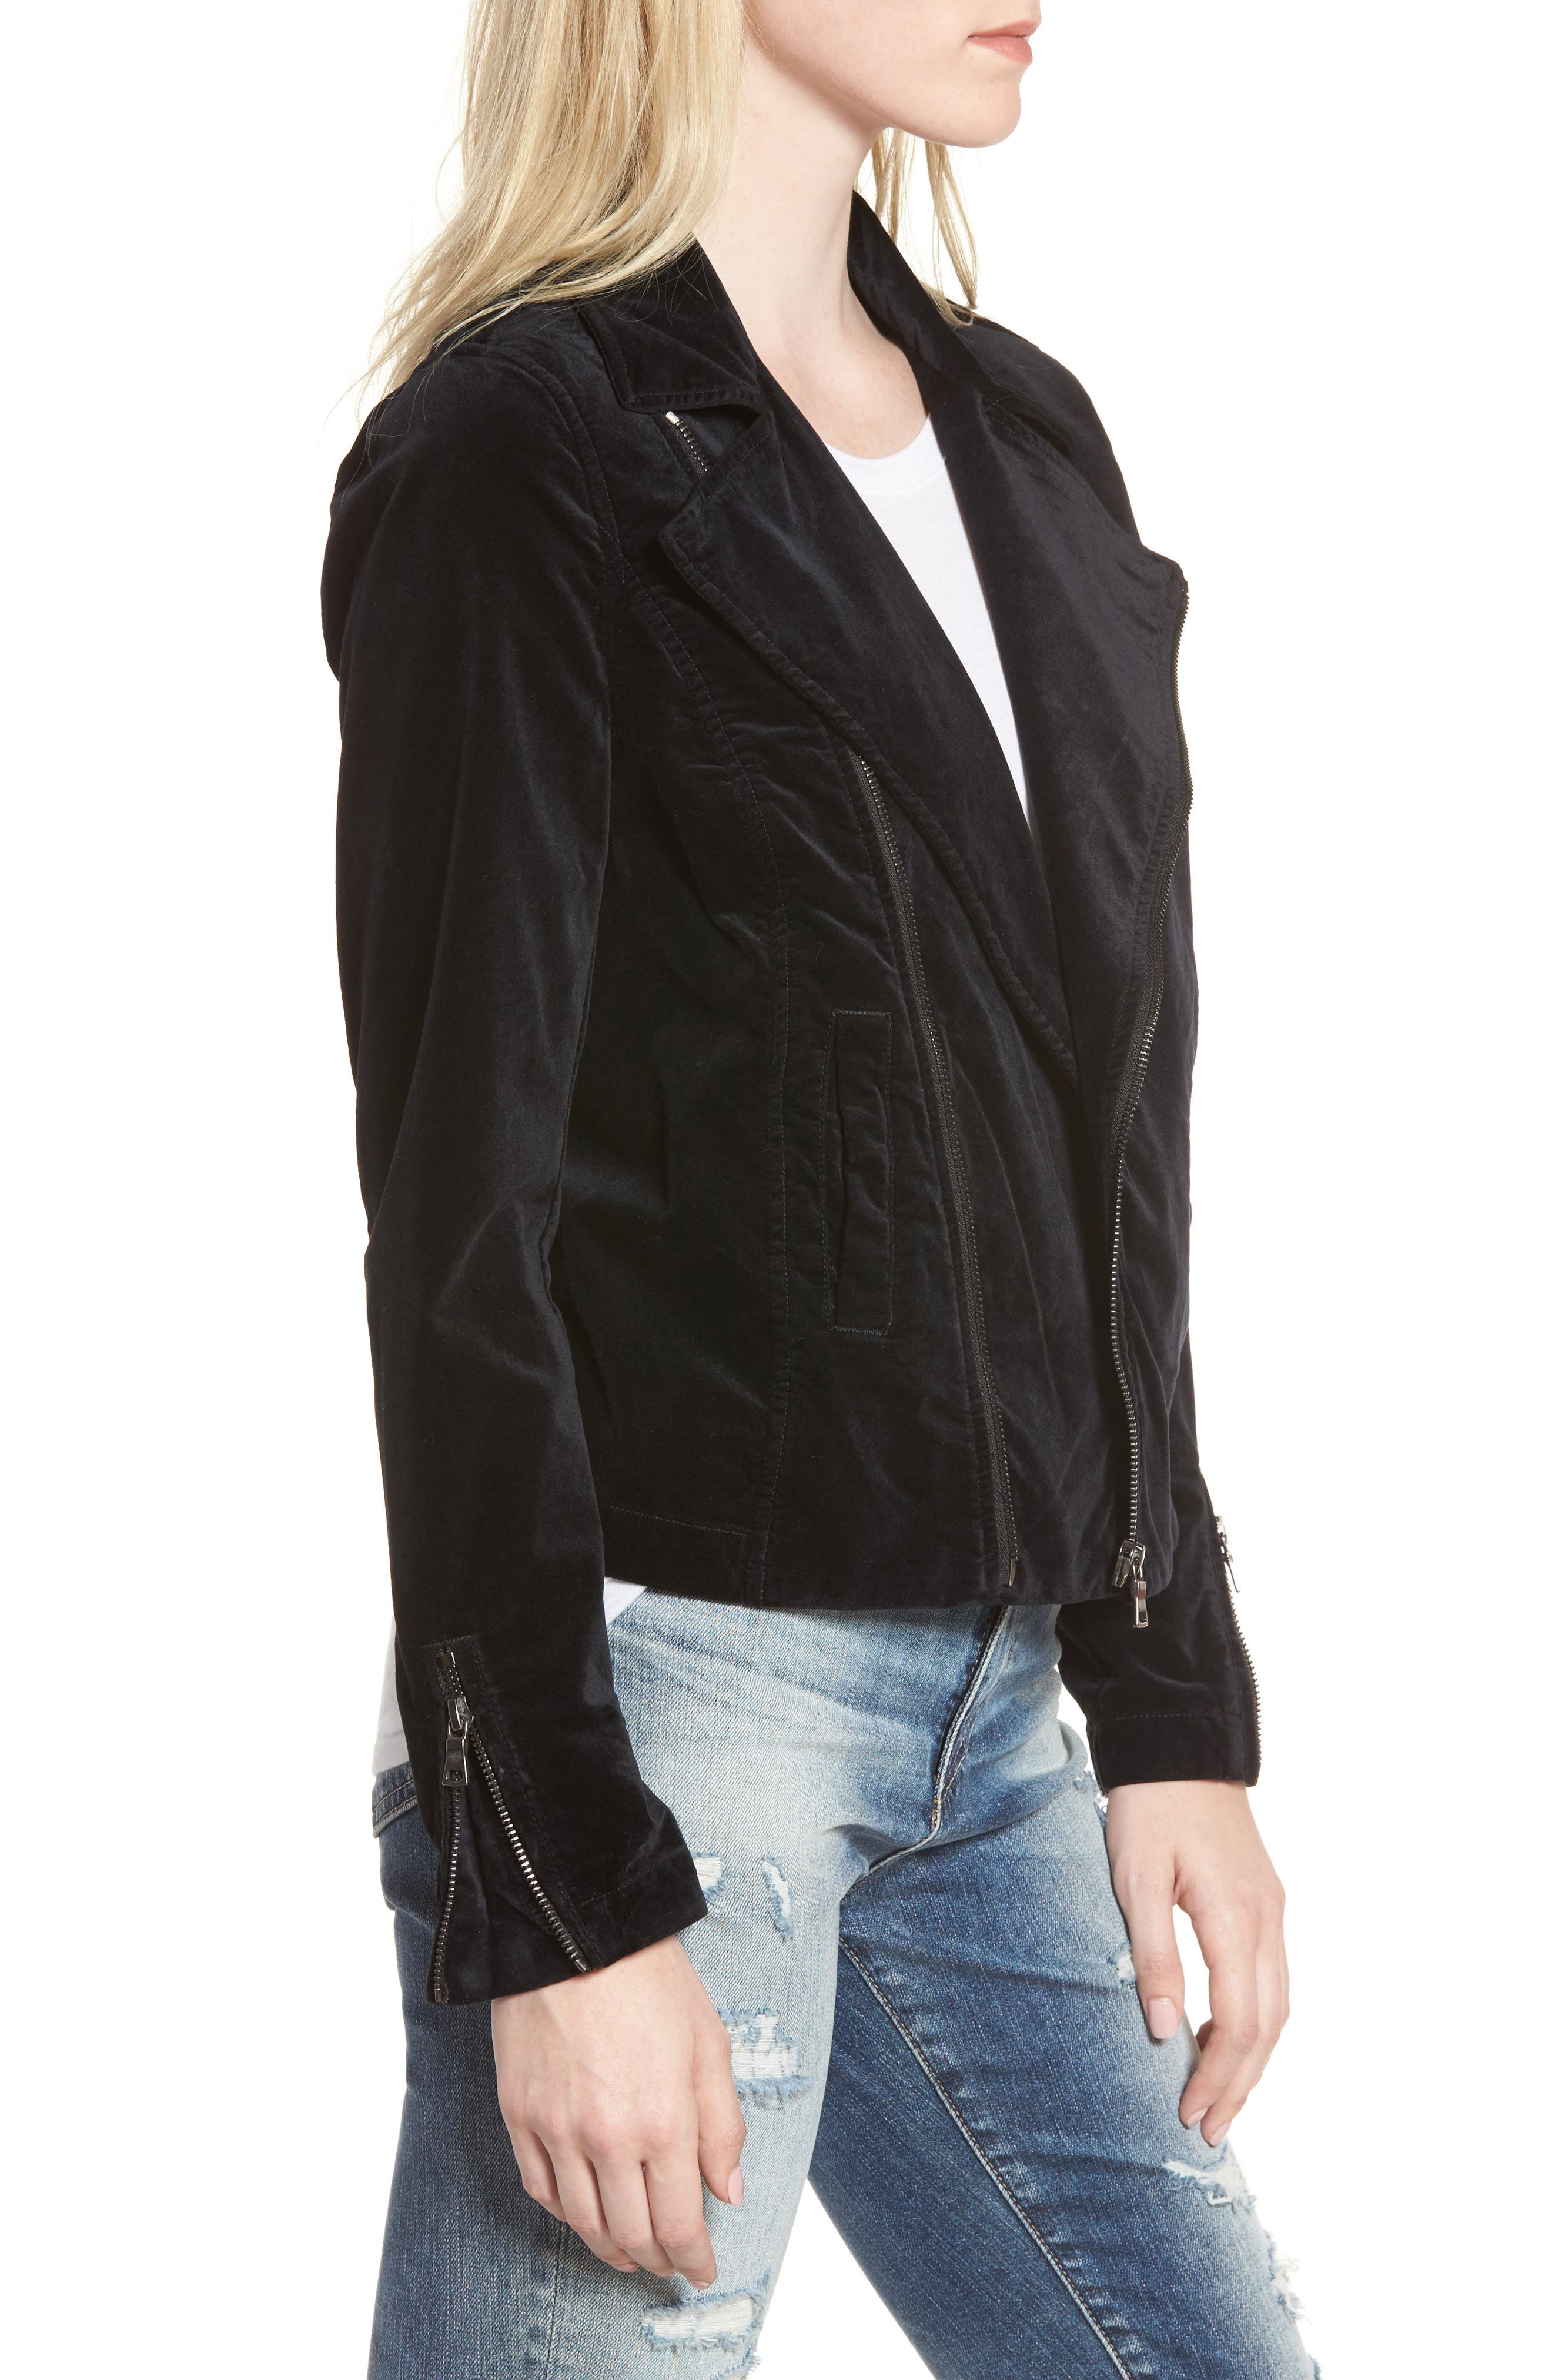 Quincy Velvet Biker Jacket,                             Alternate thumbnail 3, color,                             001